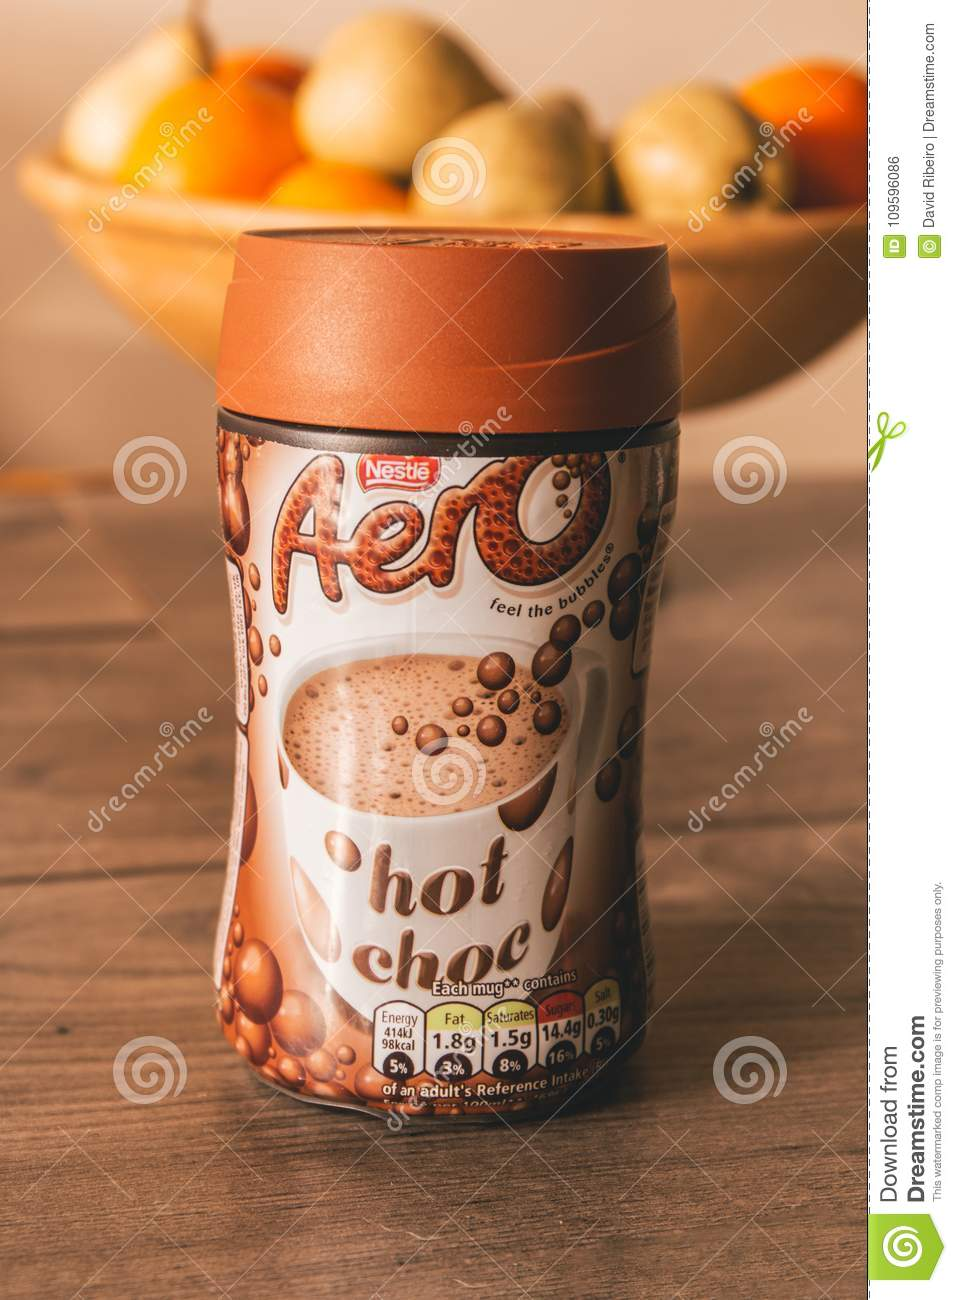 Nestlé Aero Hot Chocolate Container On Top Of A Wooden Table